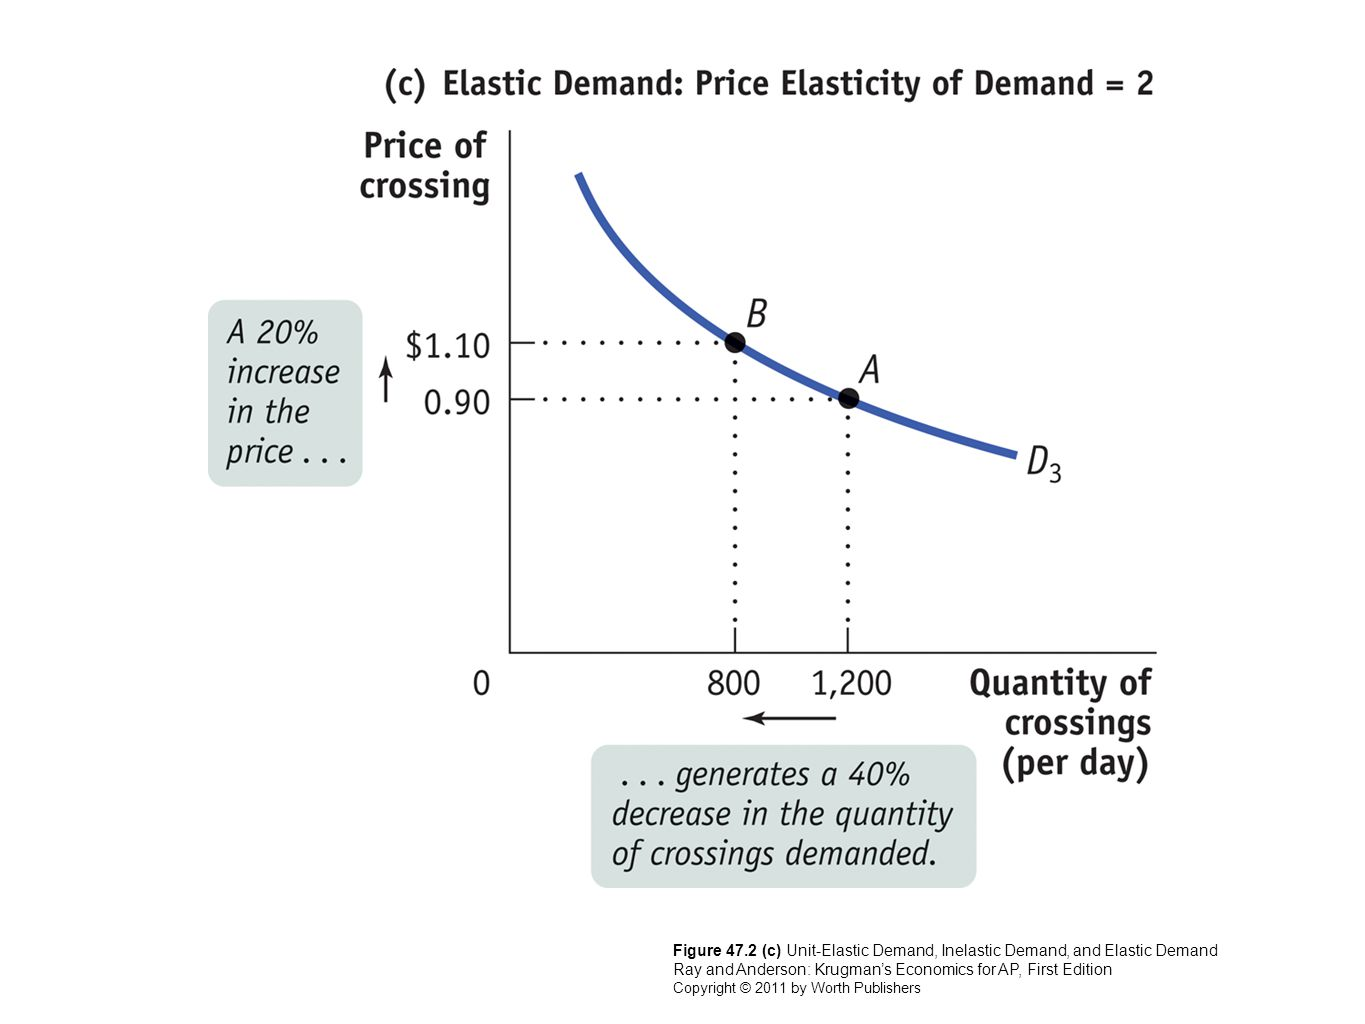 hight resolution of 14 figure 47 2 c unit elastic demand inelastic demand and elastic demand ray and anderson krugman s economics for ap first edition copyright 2011 by